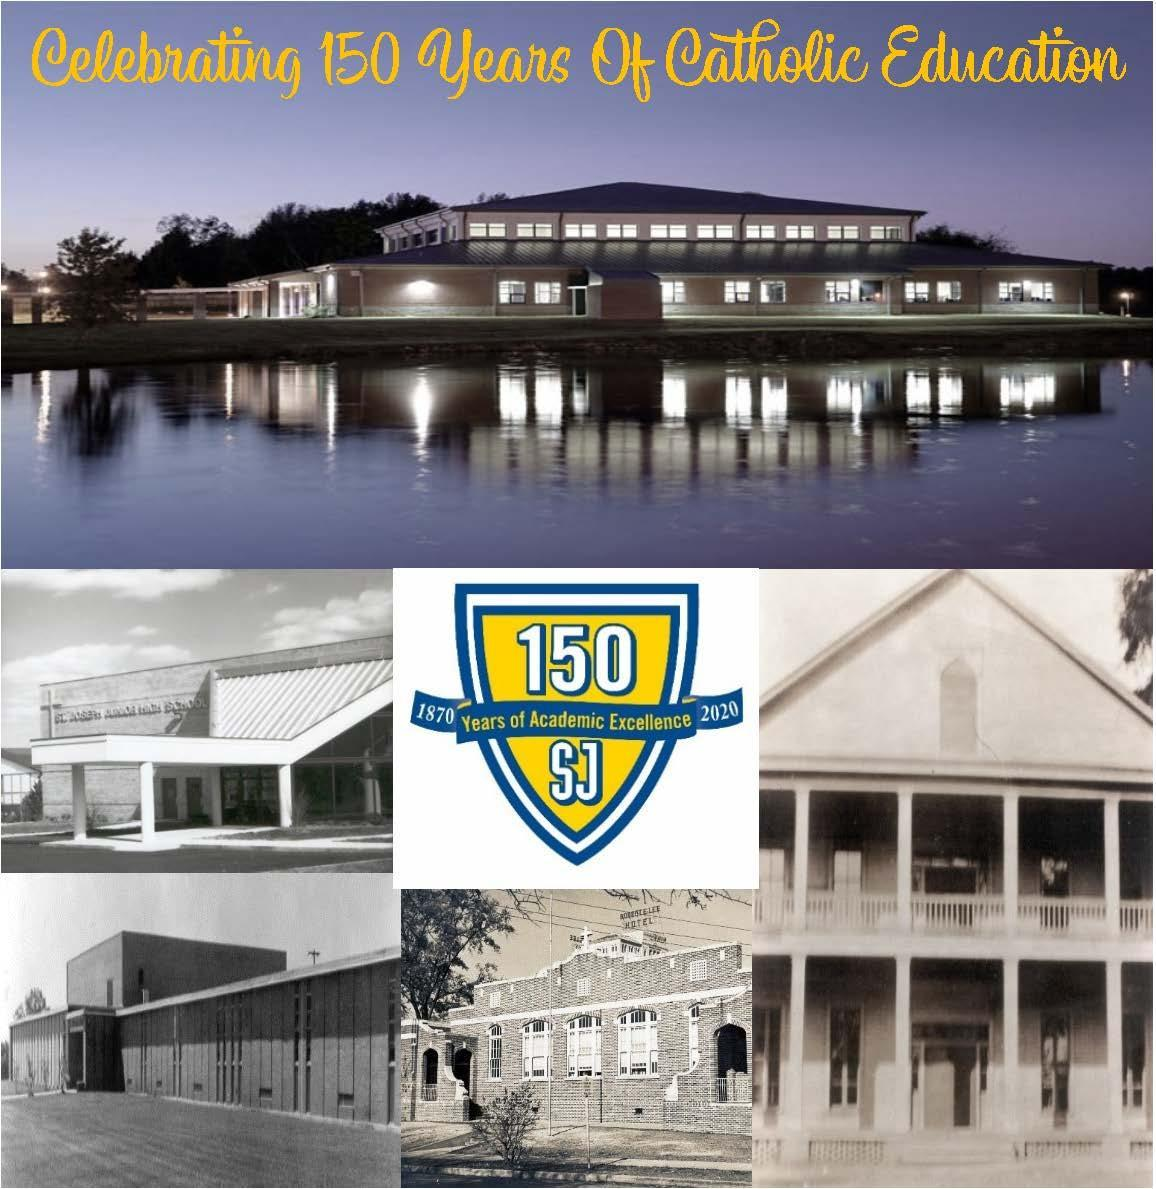 black and white images of old buildings, building on a lake at night time, Saint Joe shield (yellow and blue)